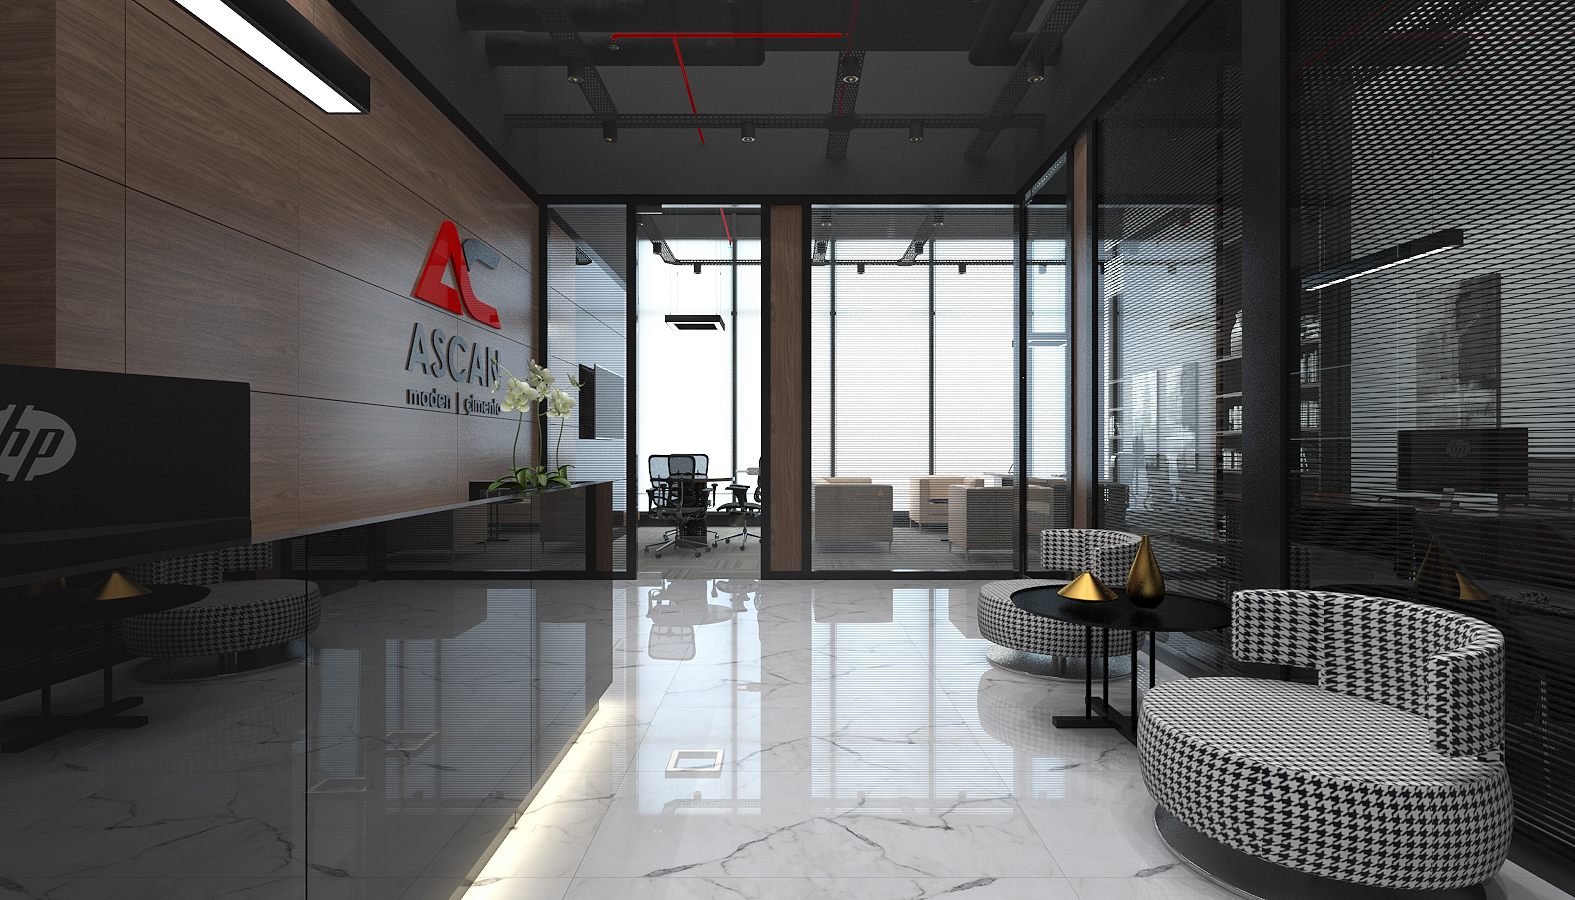 Ascan Mine and Cement, Offices